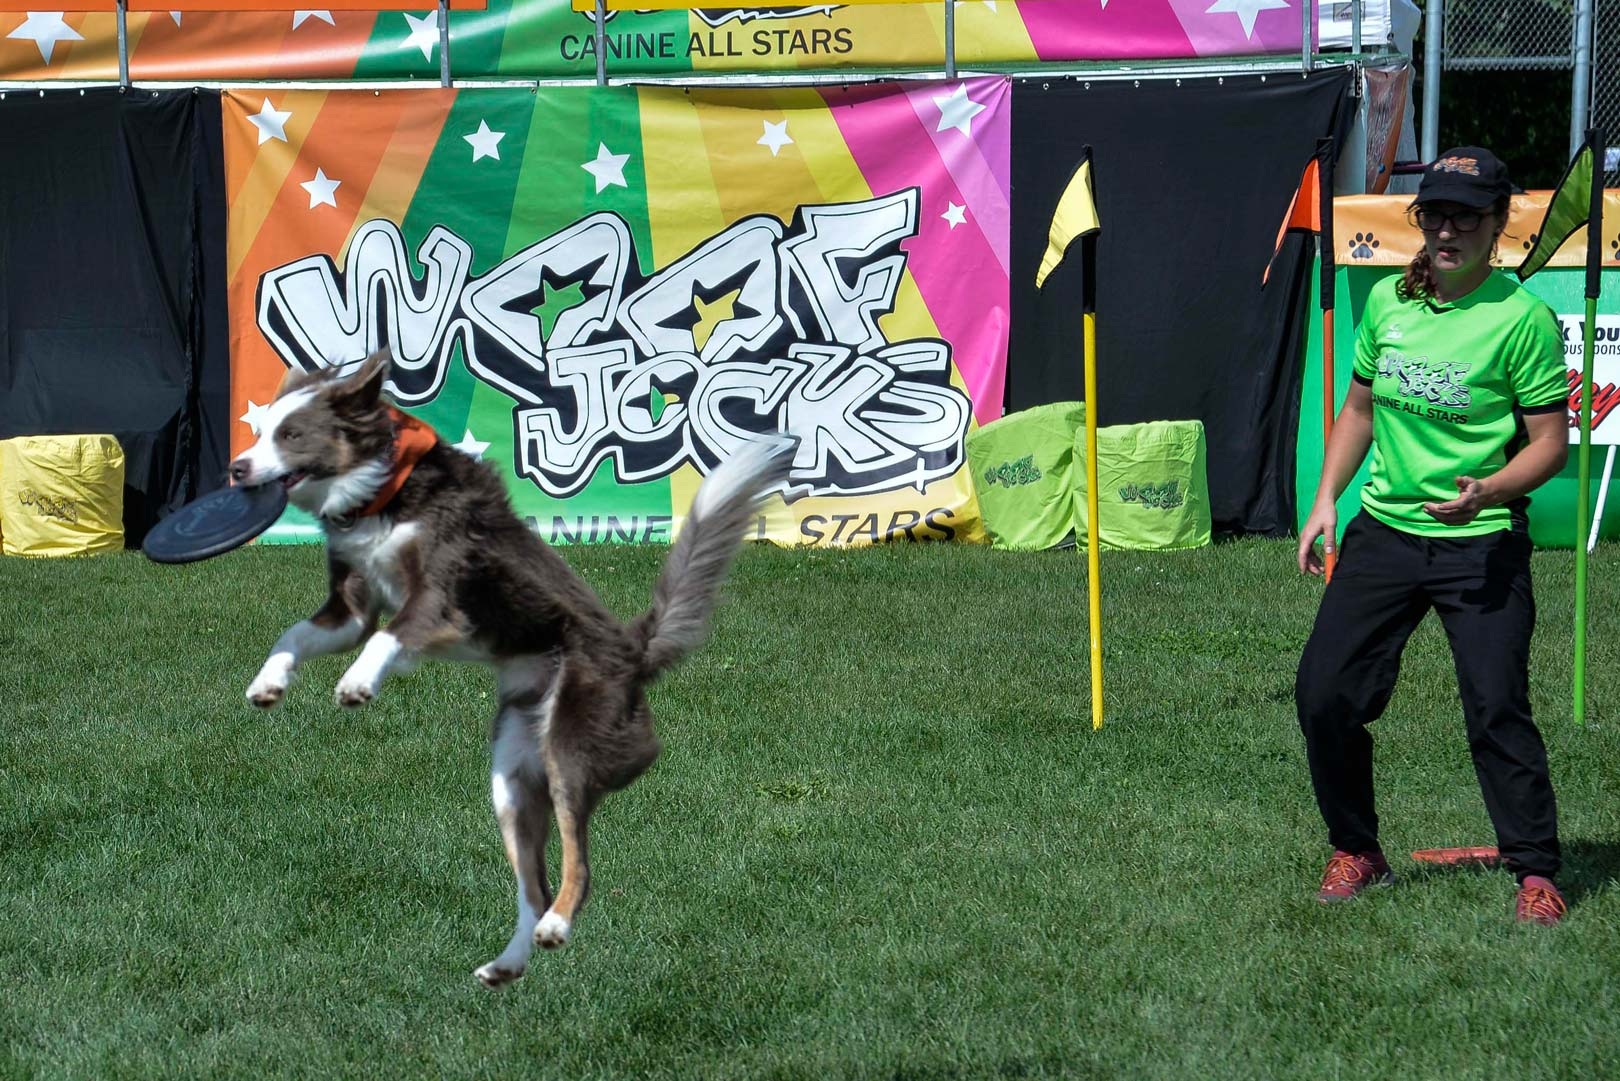 Woofjocks Canine All-Stars at Beeton Fair